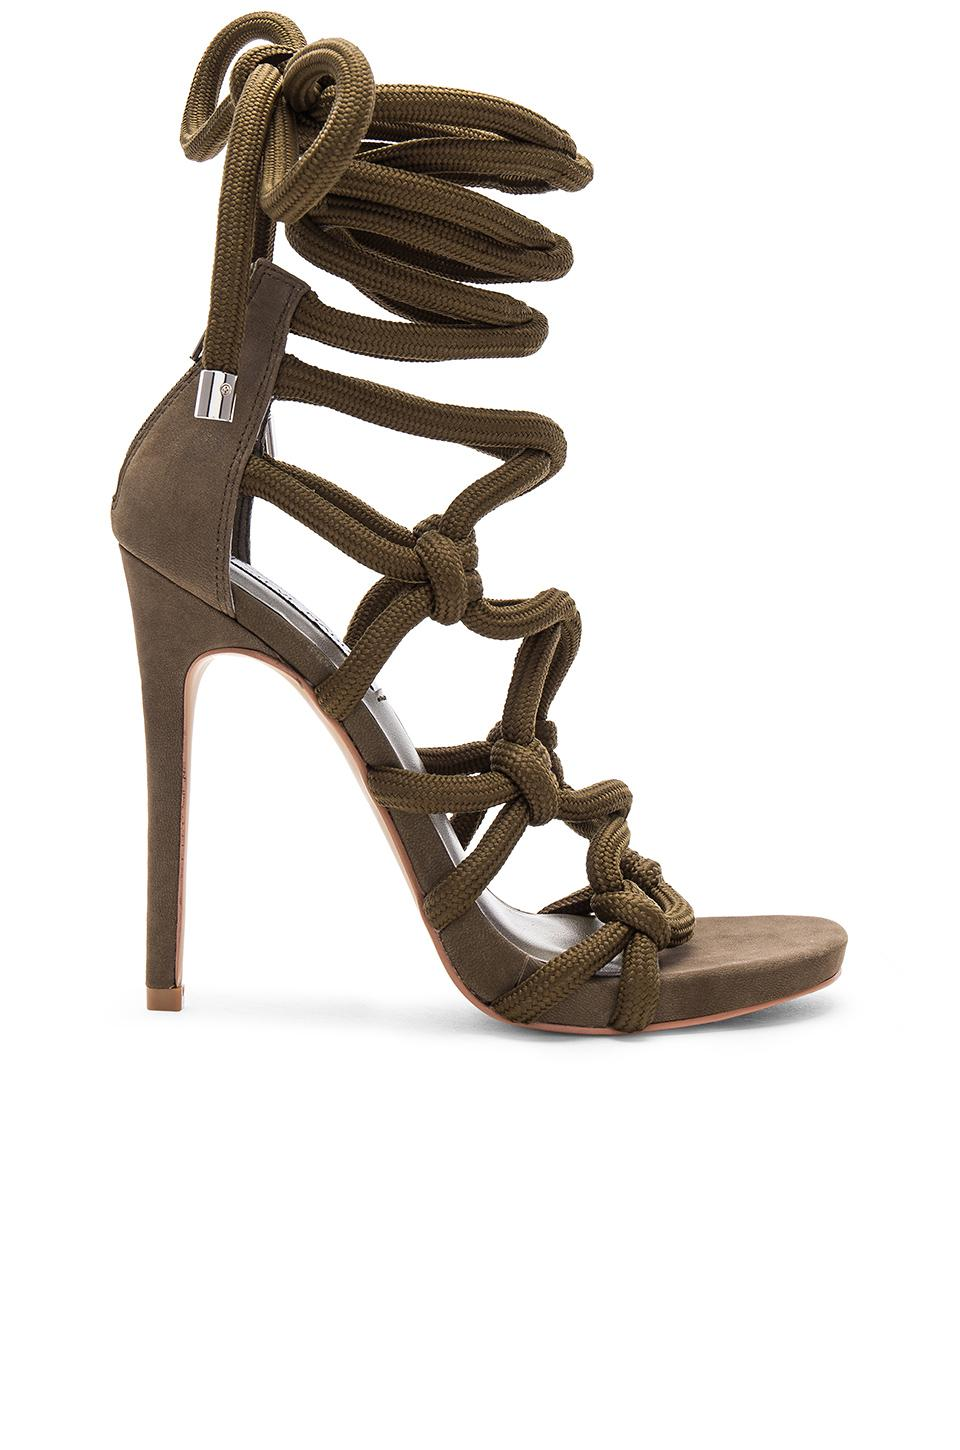 57b9a3fcfc70 Lyst - Steve Madden Dream Heel in Green